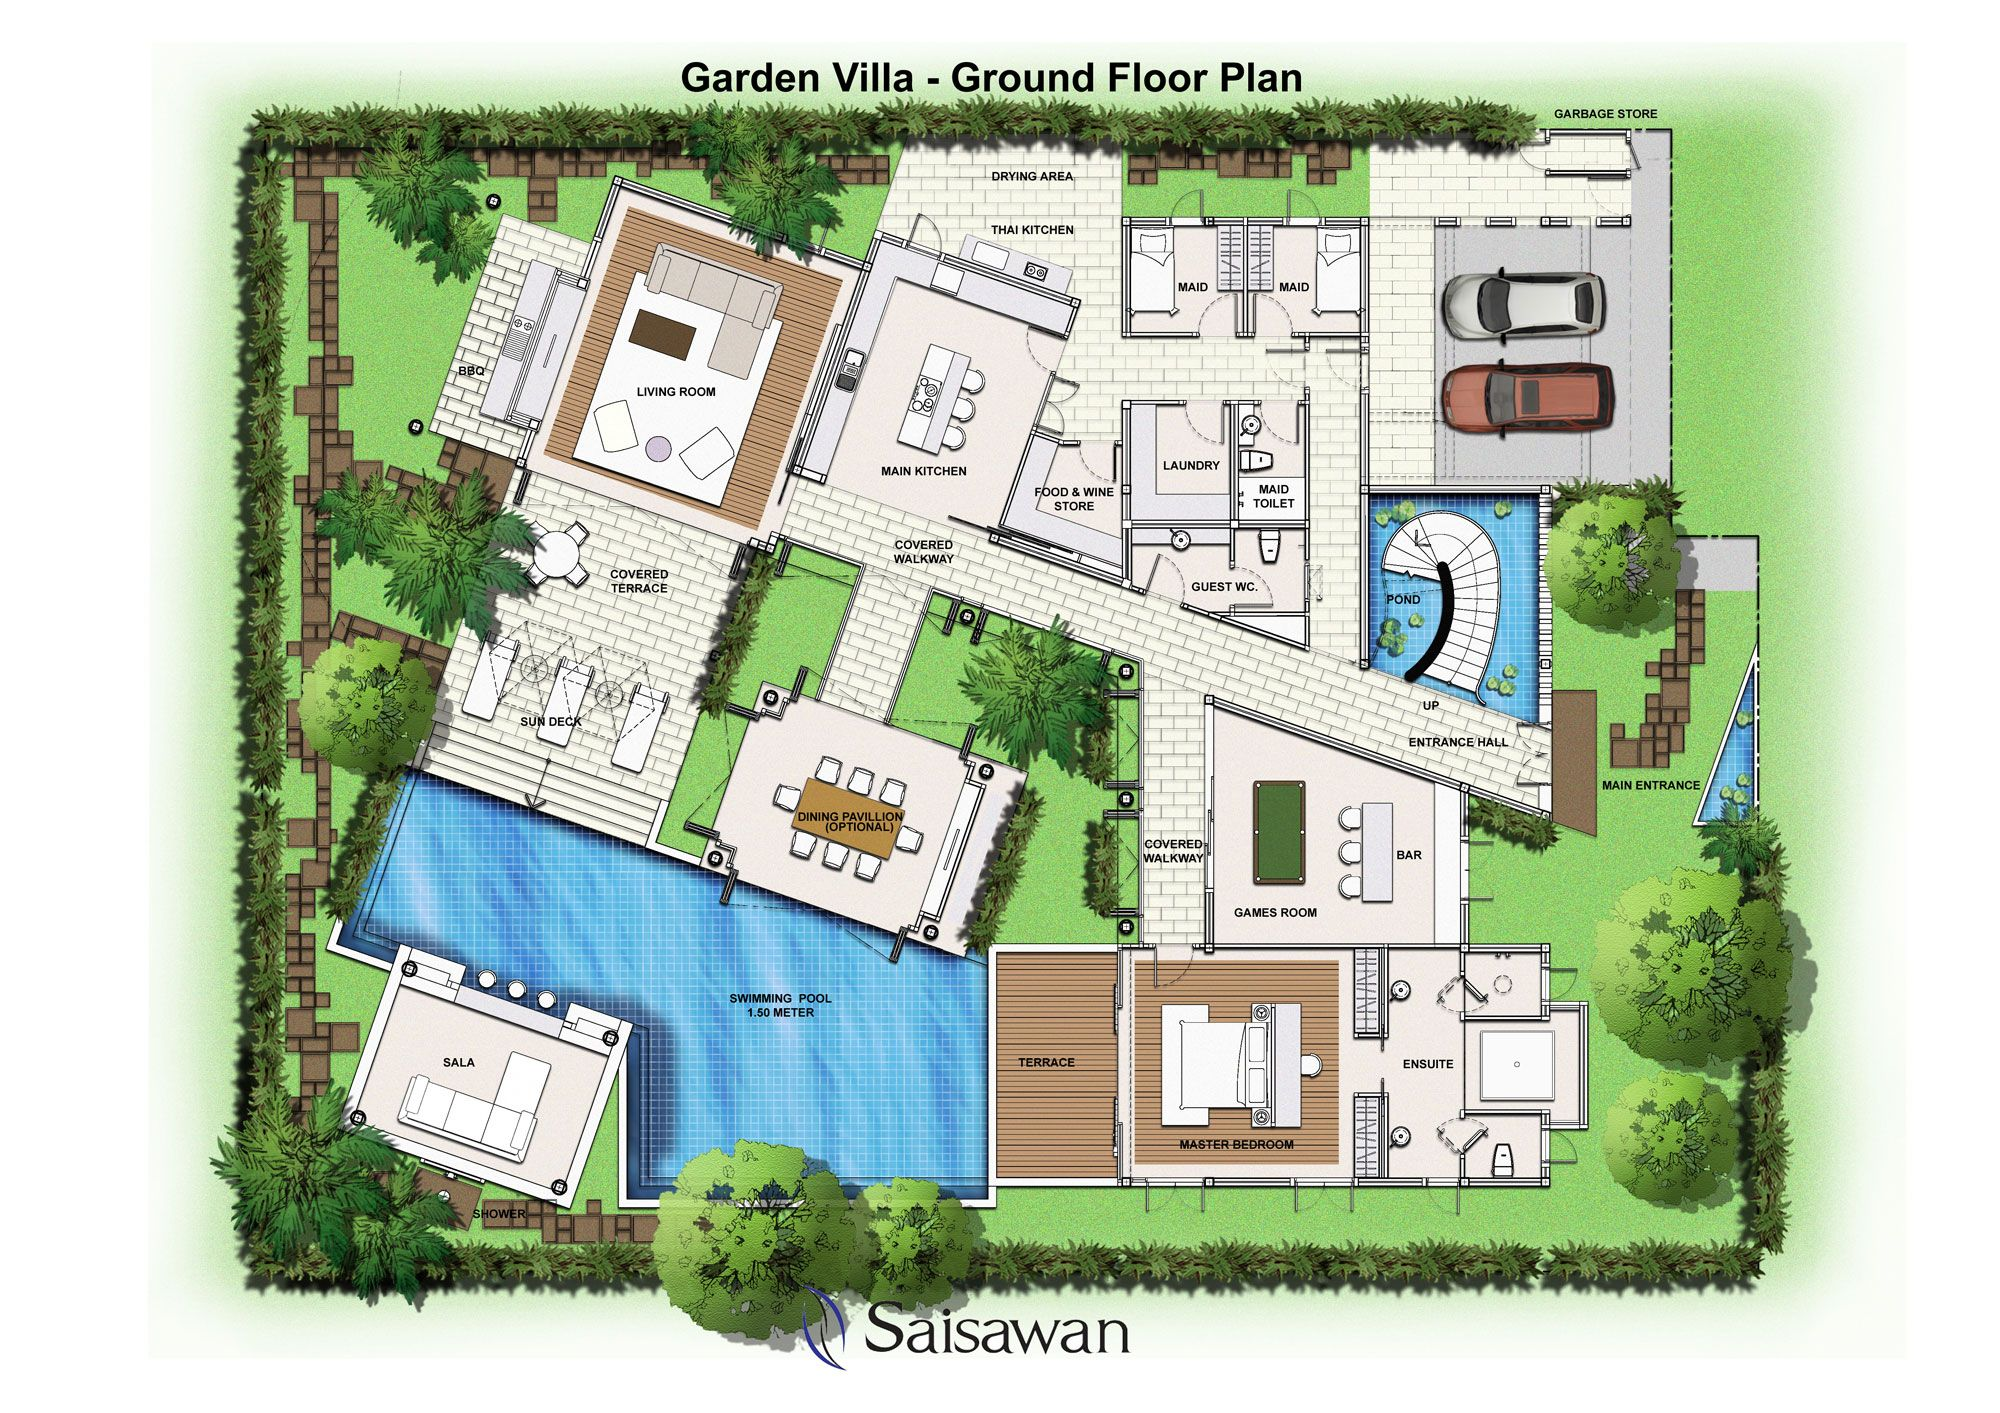 Saisawan garden villas ground floor plan house plans for House landscape plan